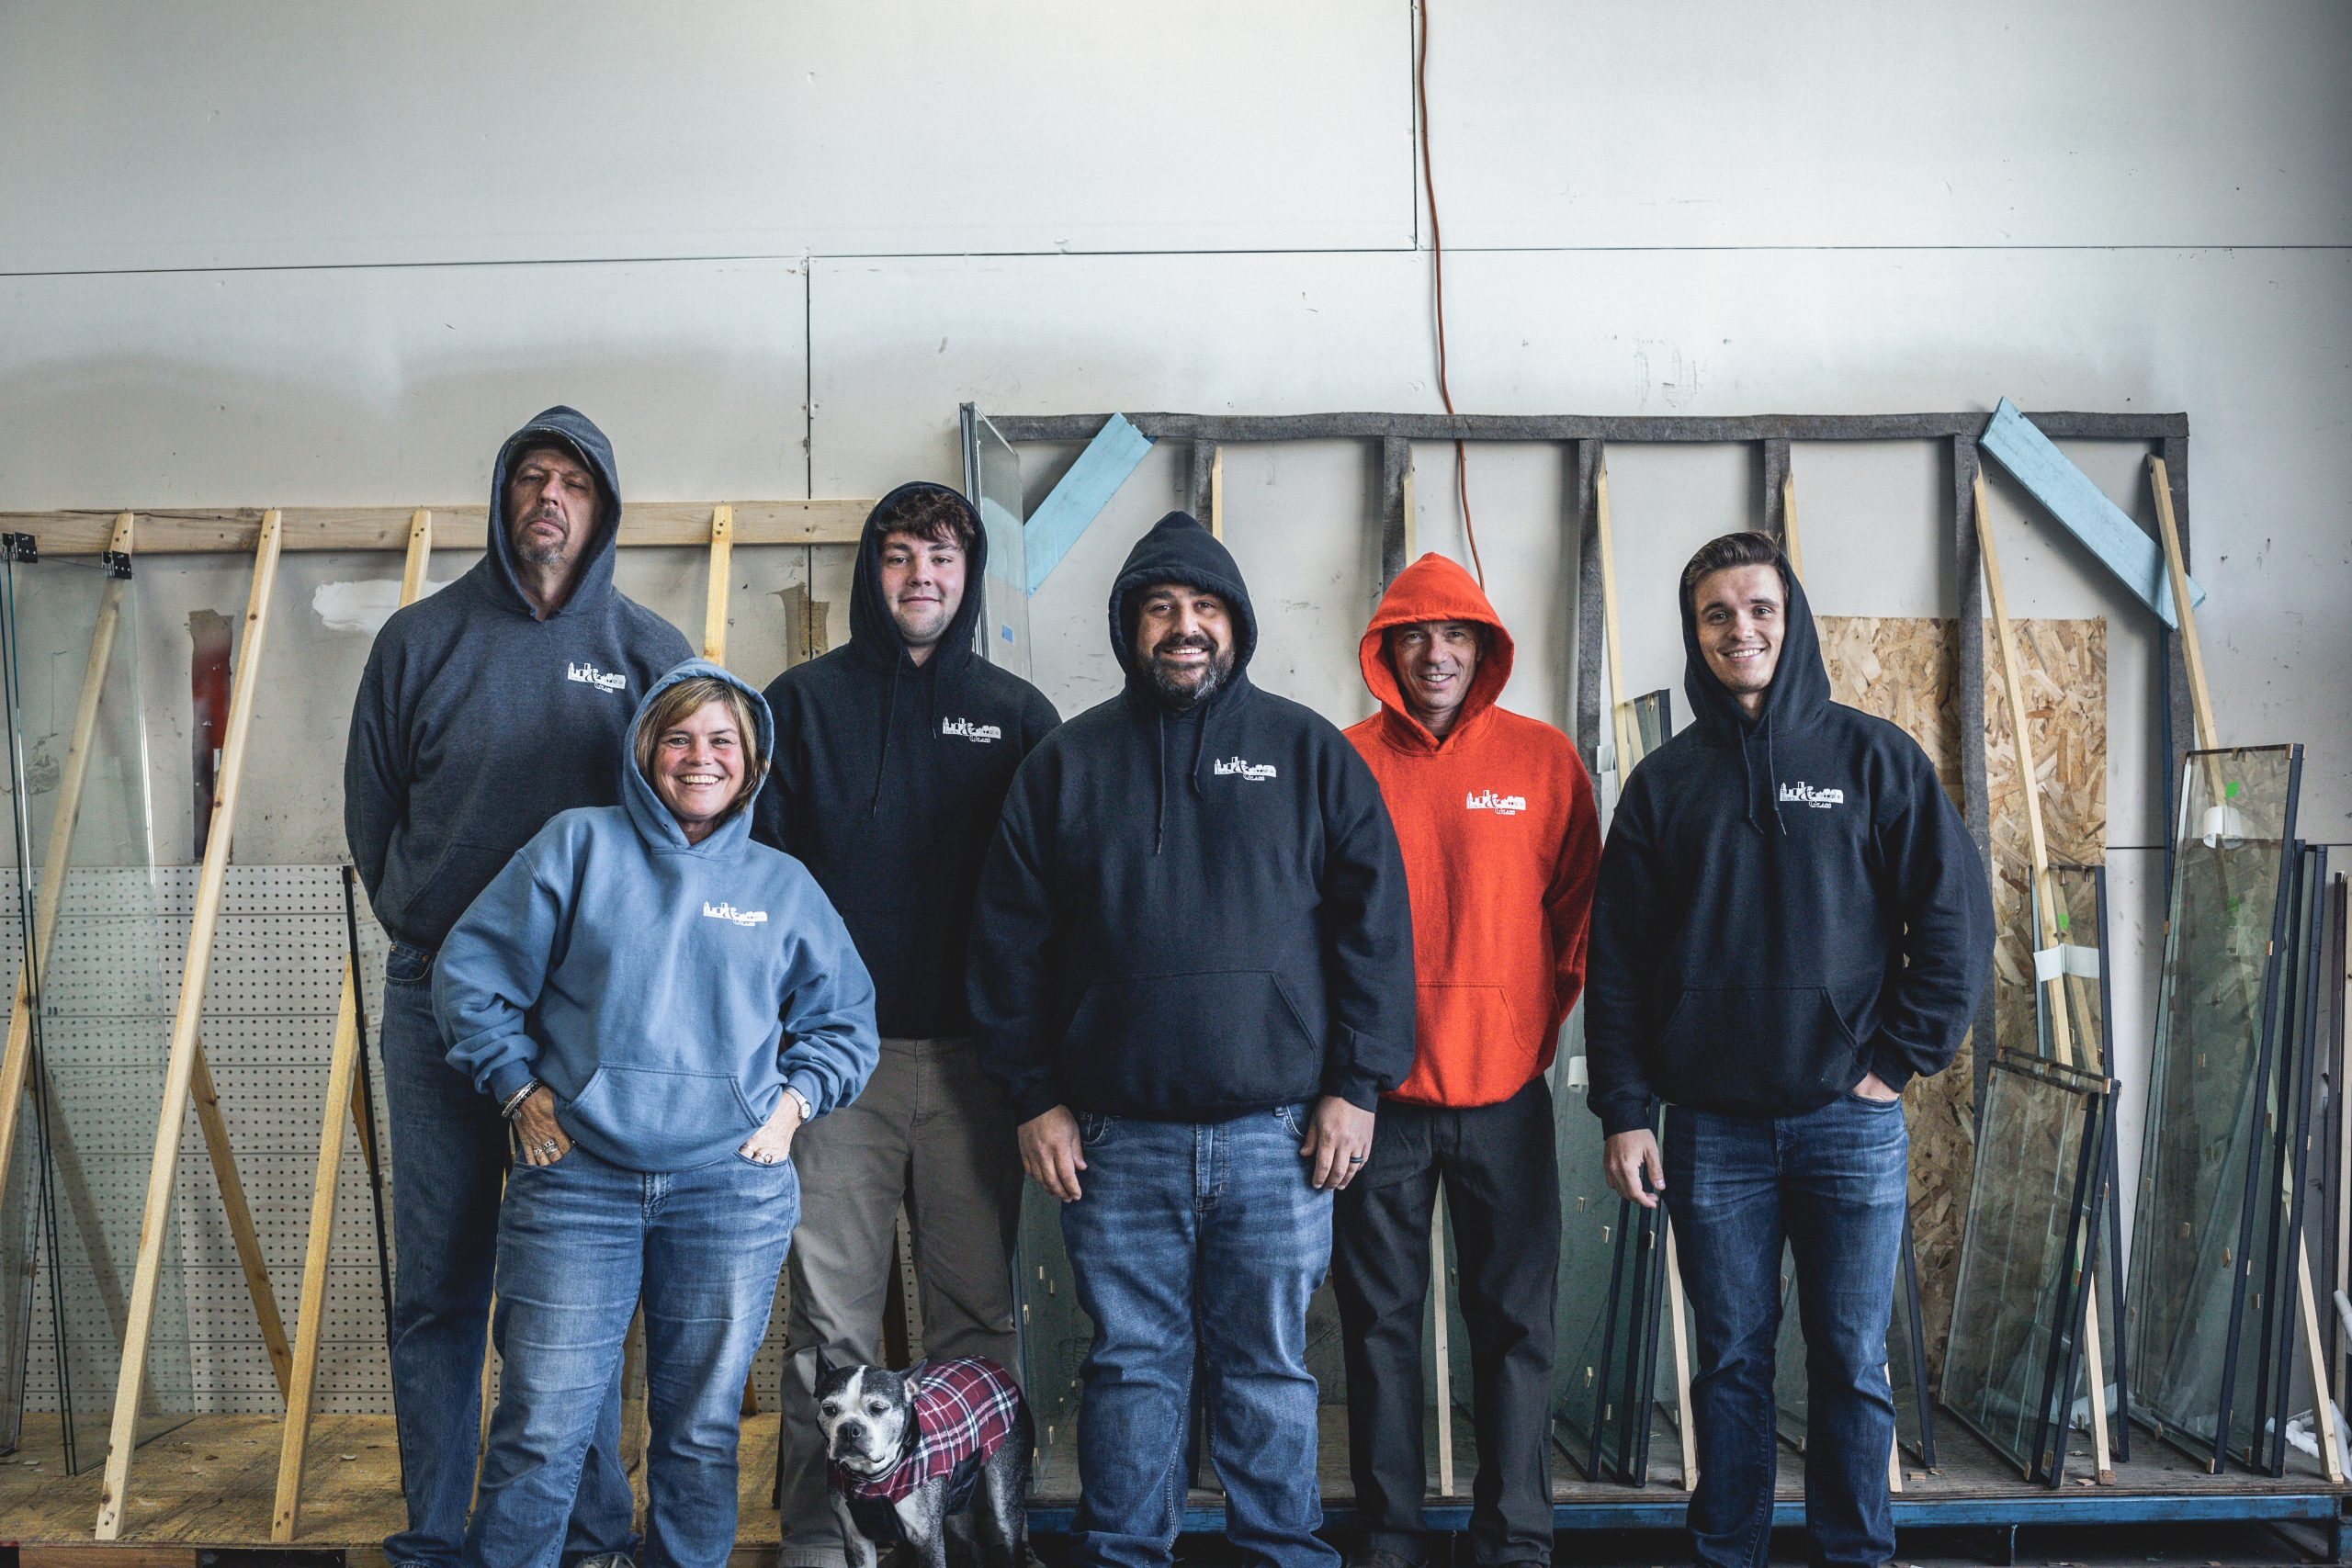 The Gresham window repair crew at T&C Glass